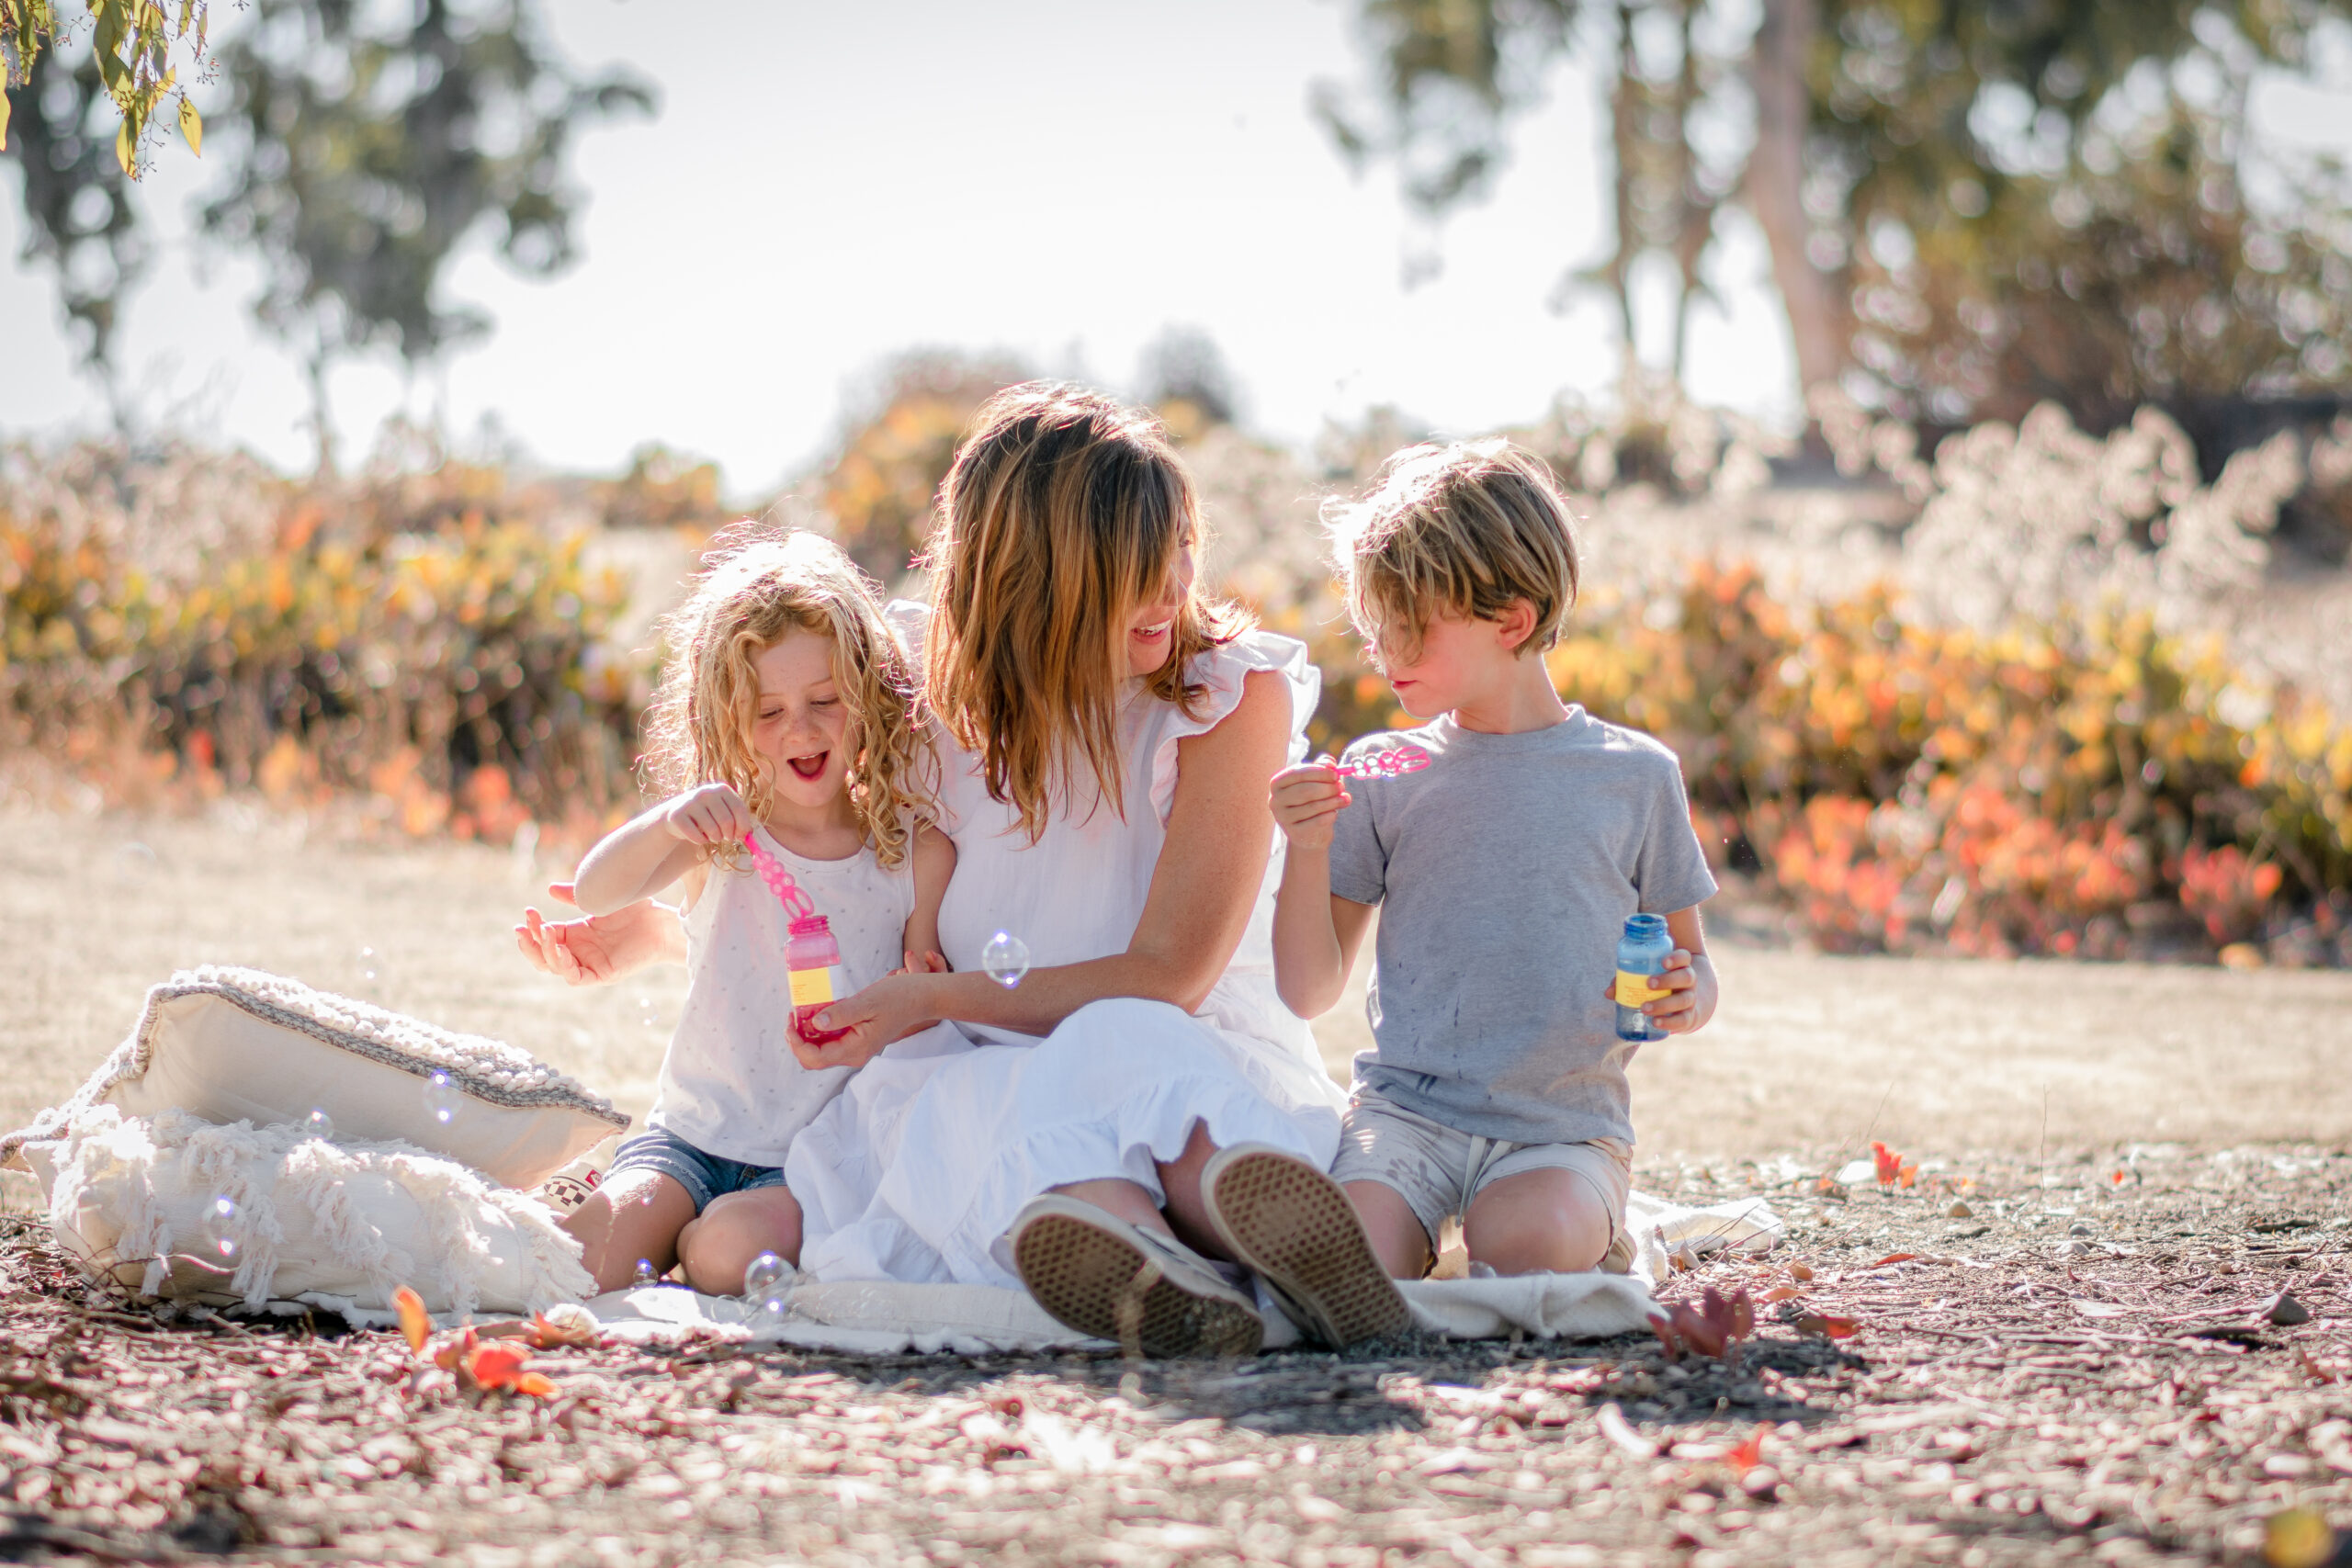 Lifestyle Photo of a Mom and two children sitting on a blanket and blowing bubble in a San Diego Park